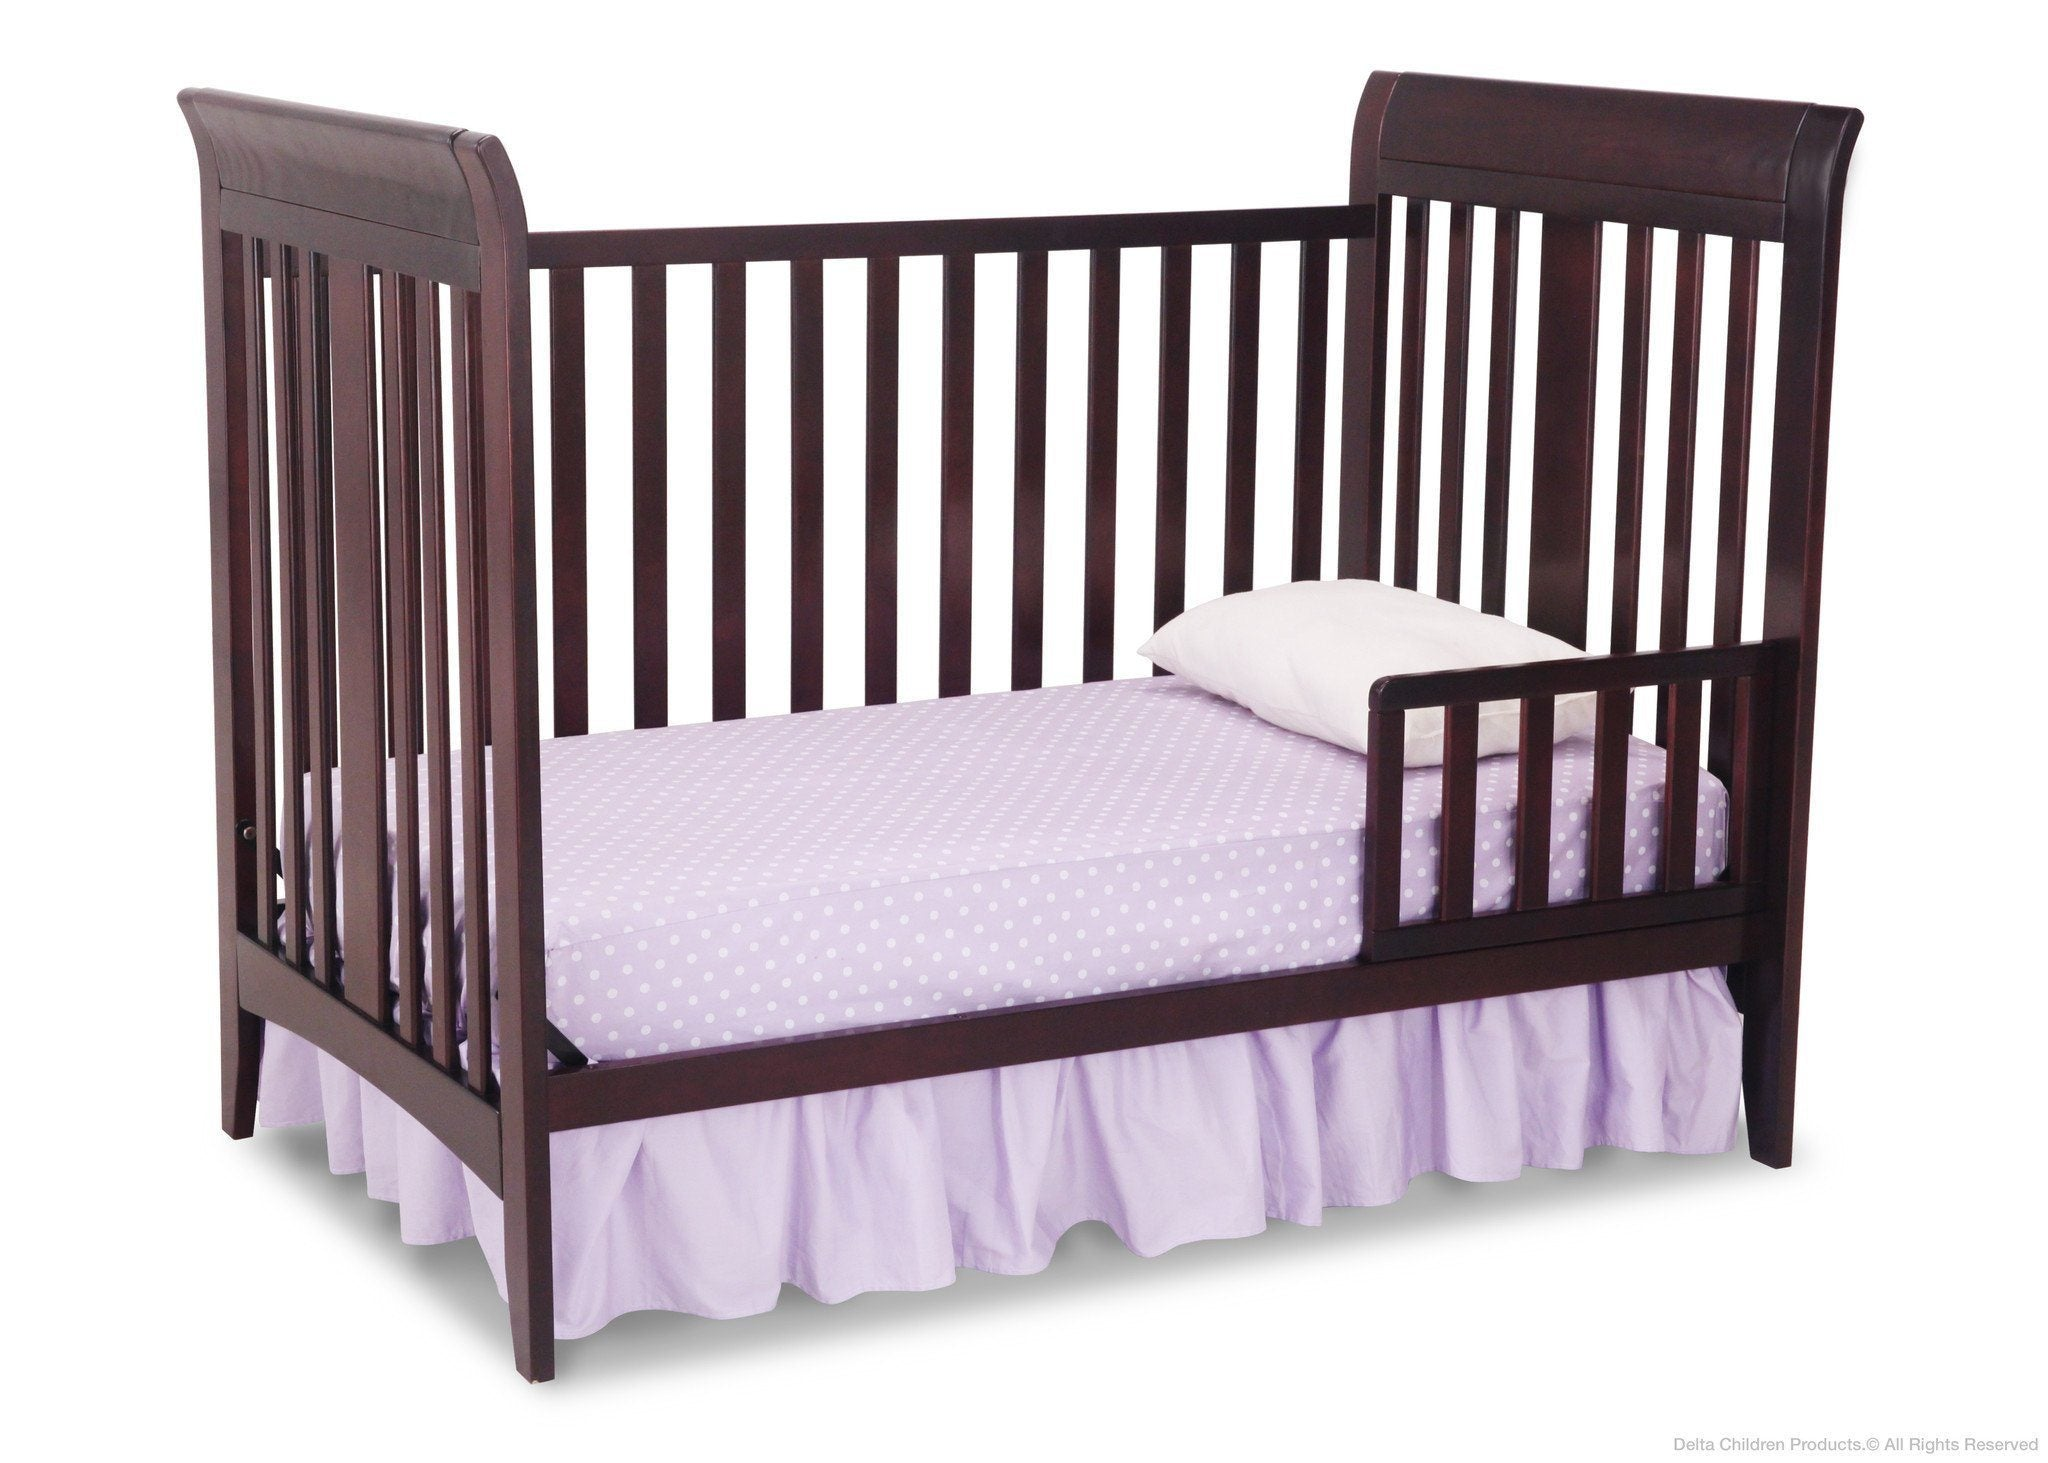 Delta Children Dark Chocolate (207) Parkside 3-in-1-Crib, Toddler Bed Conversion b3b